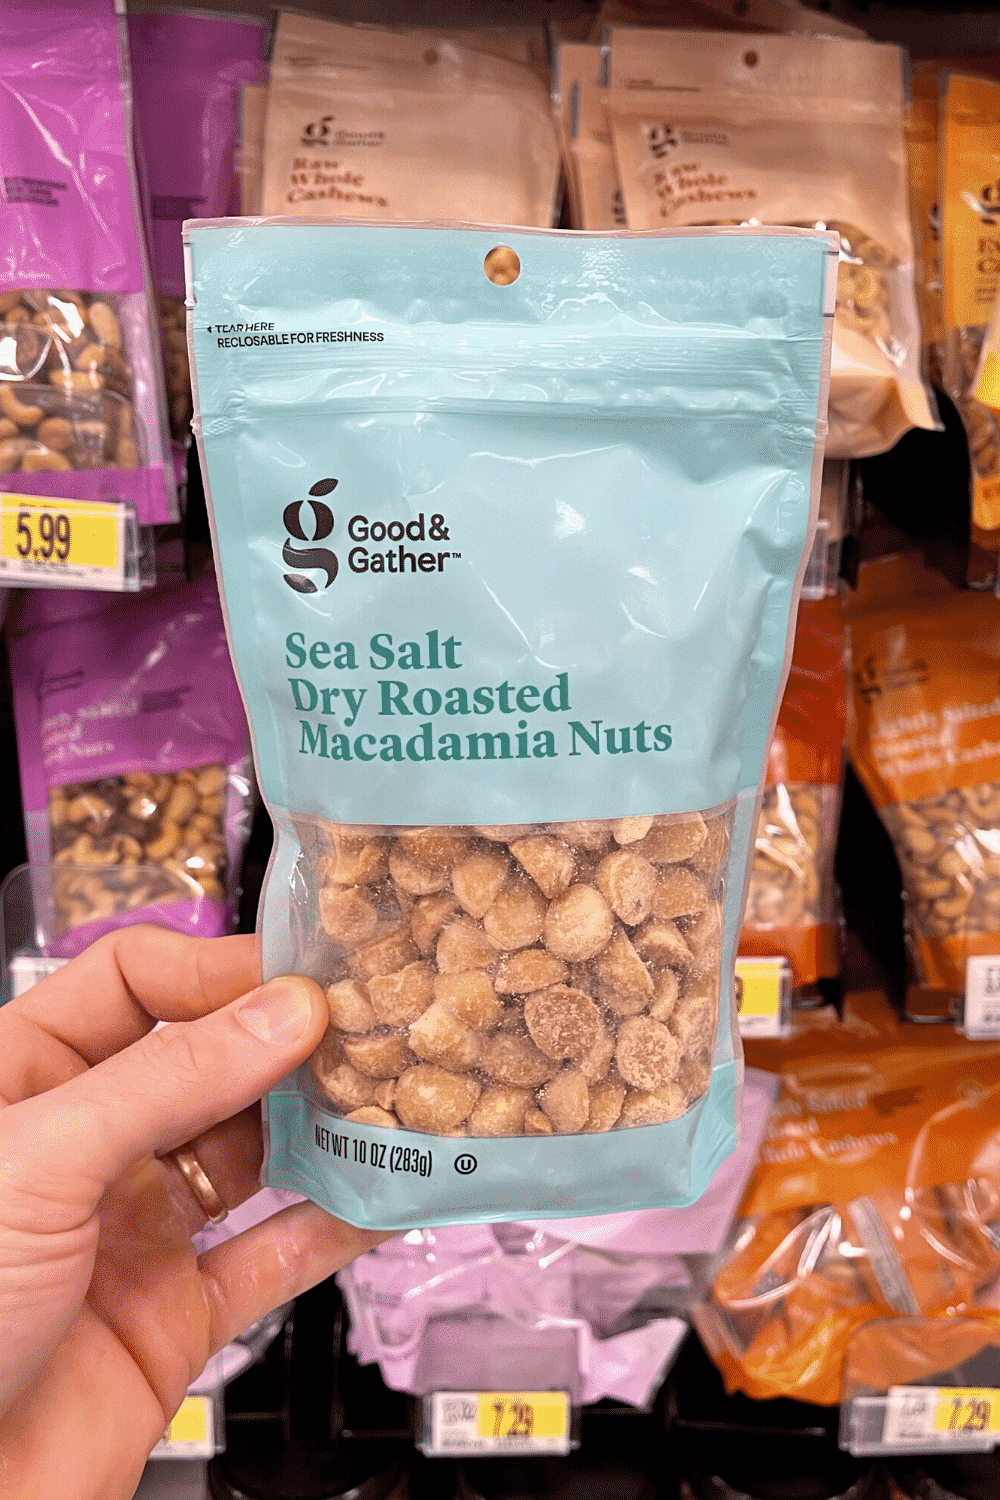 A hand holding a bag of dry roasted macadamia nuts holding a container of French onion dip.